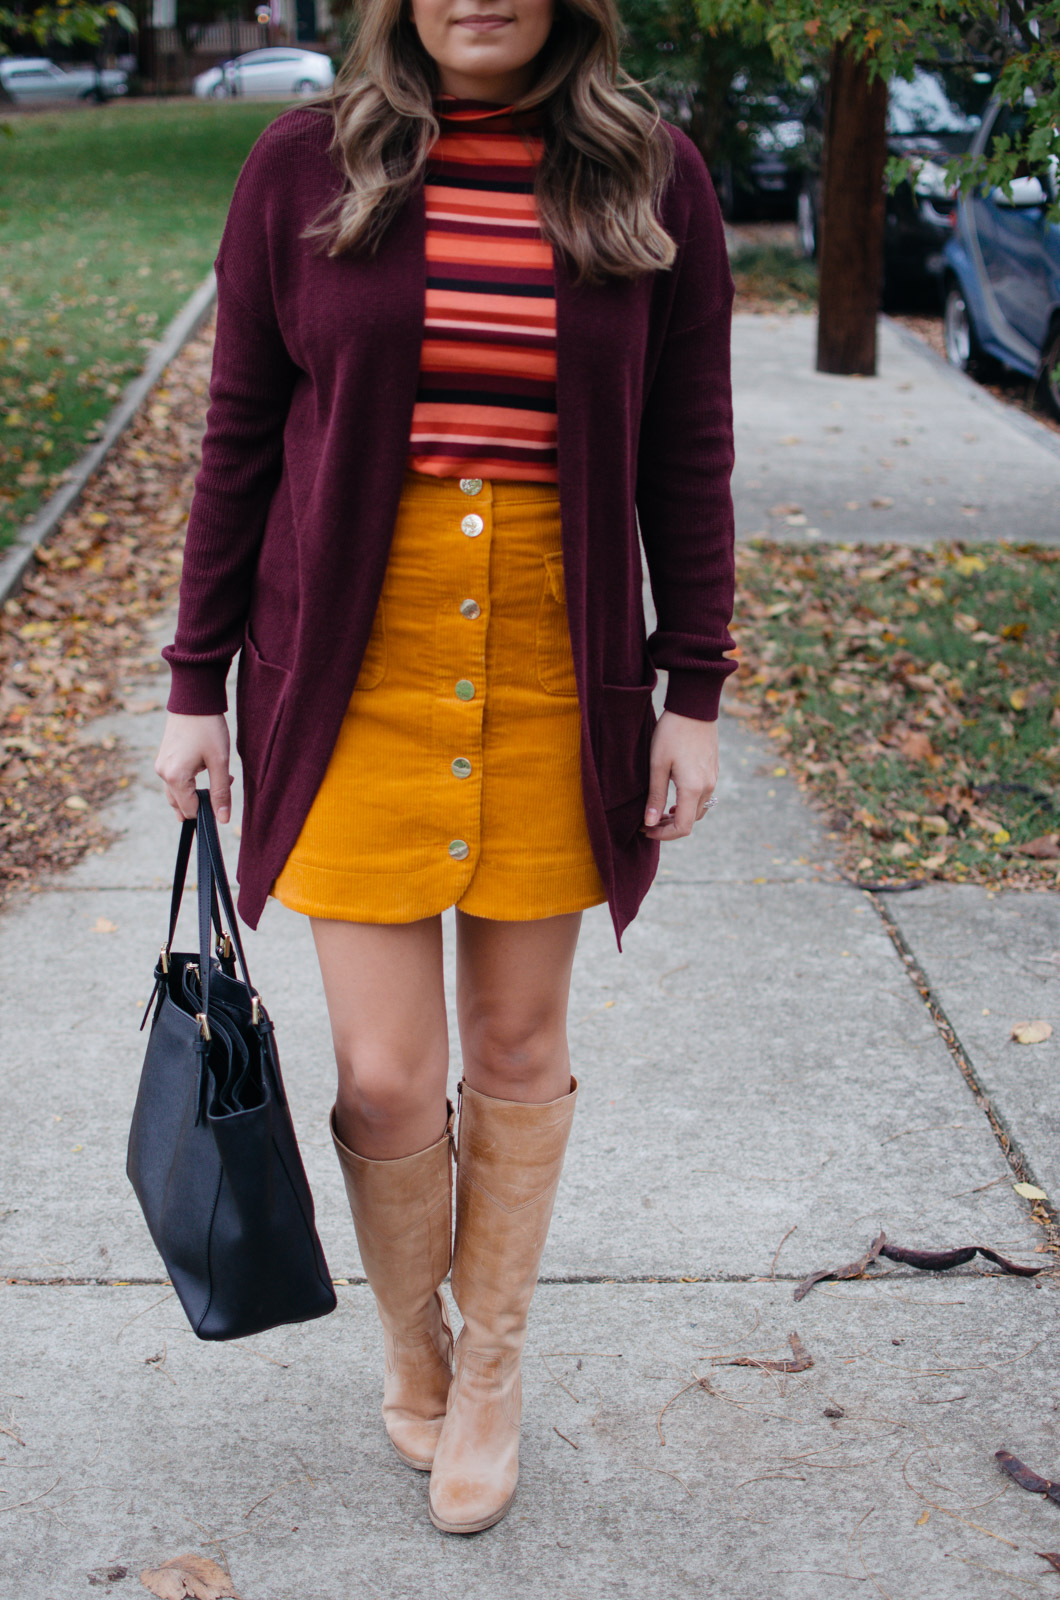 work outfits fall - corduroy skirt outfit | For more Fall outfit ideas, click through to bylaurenm.com!